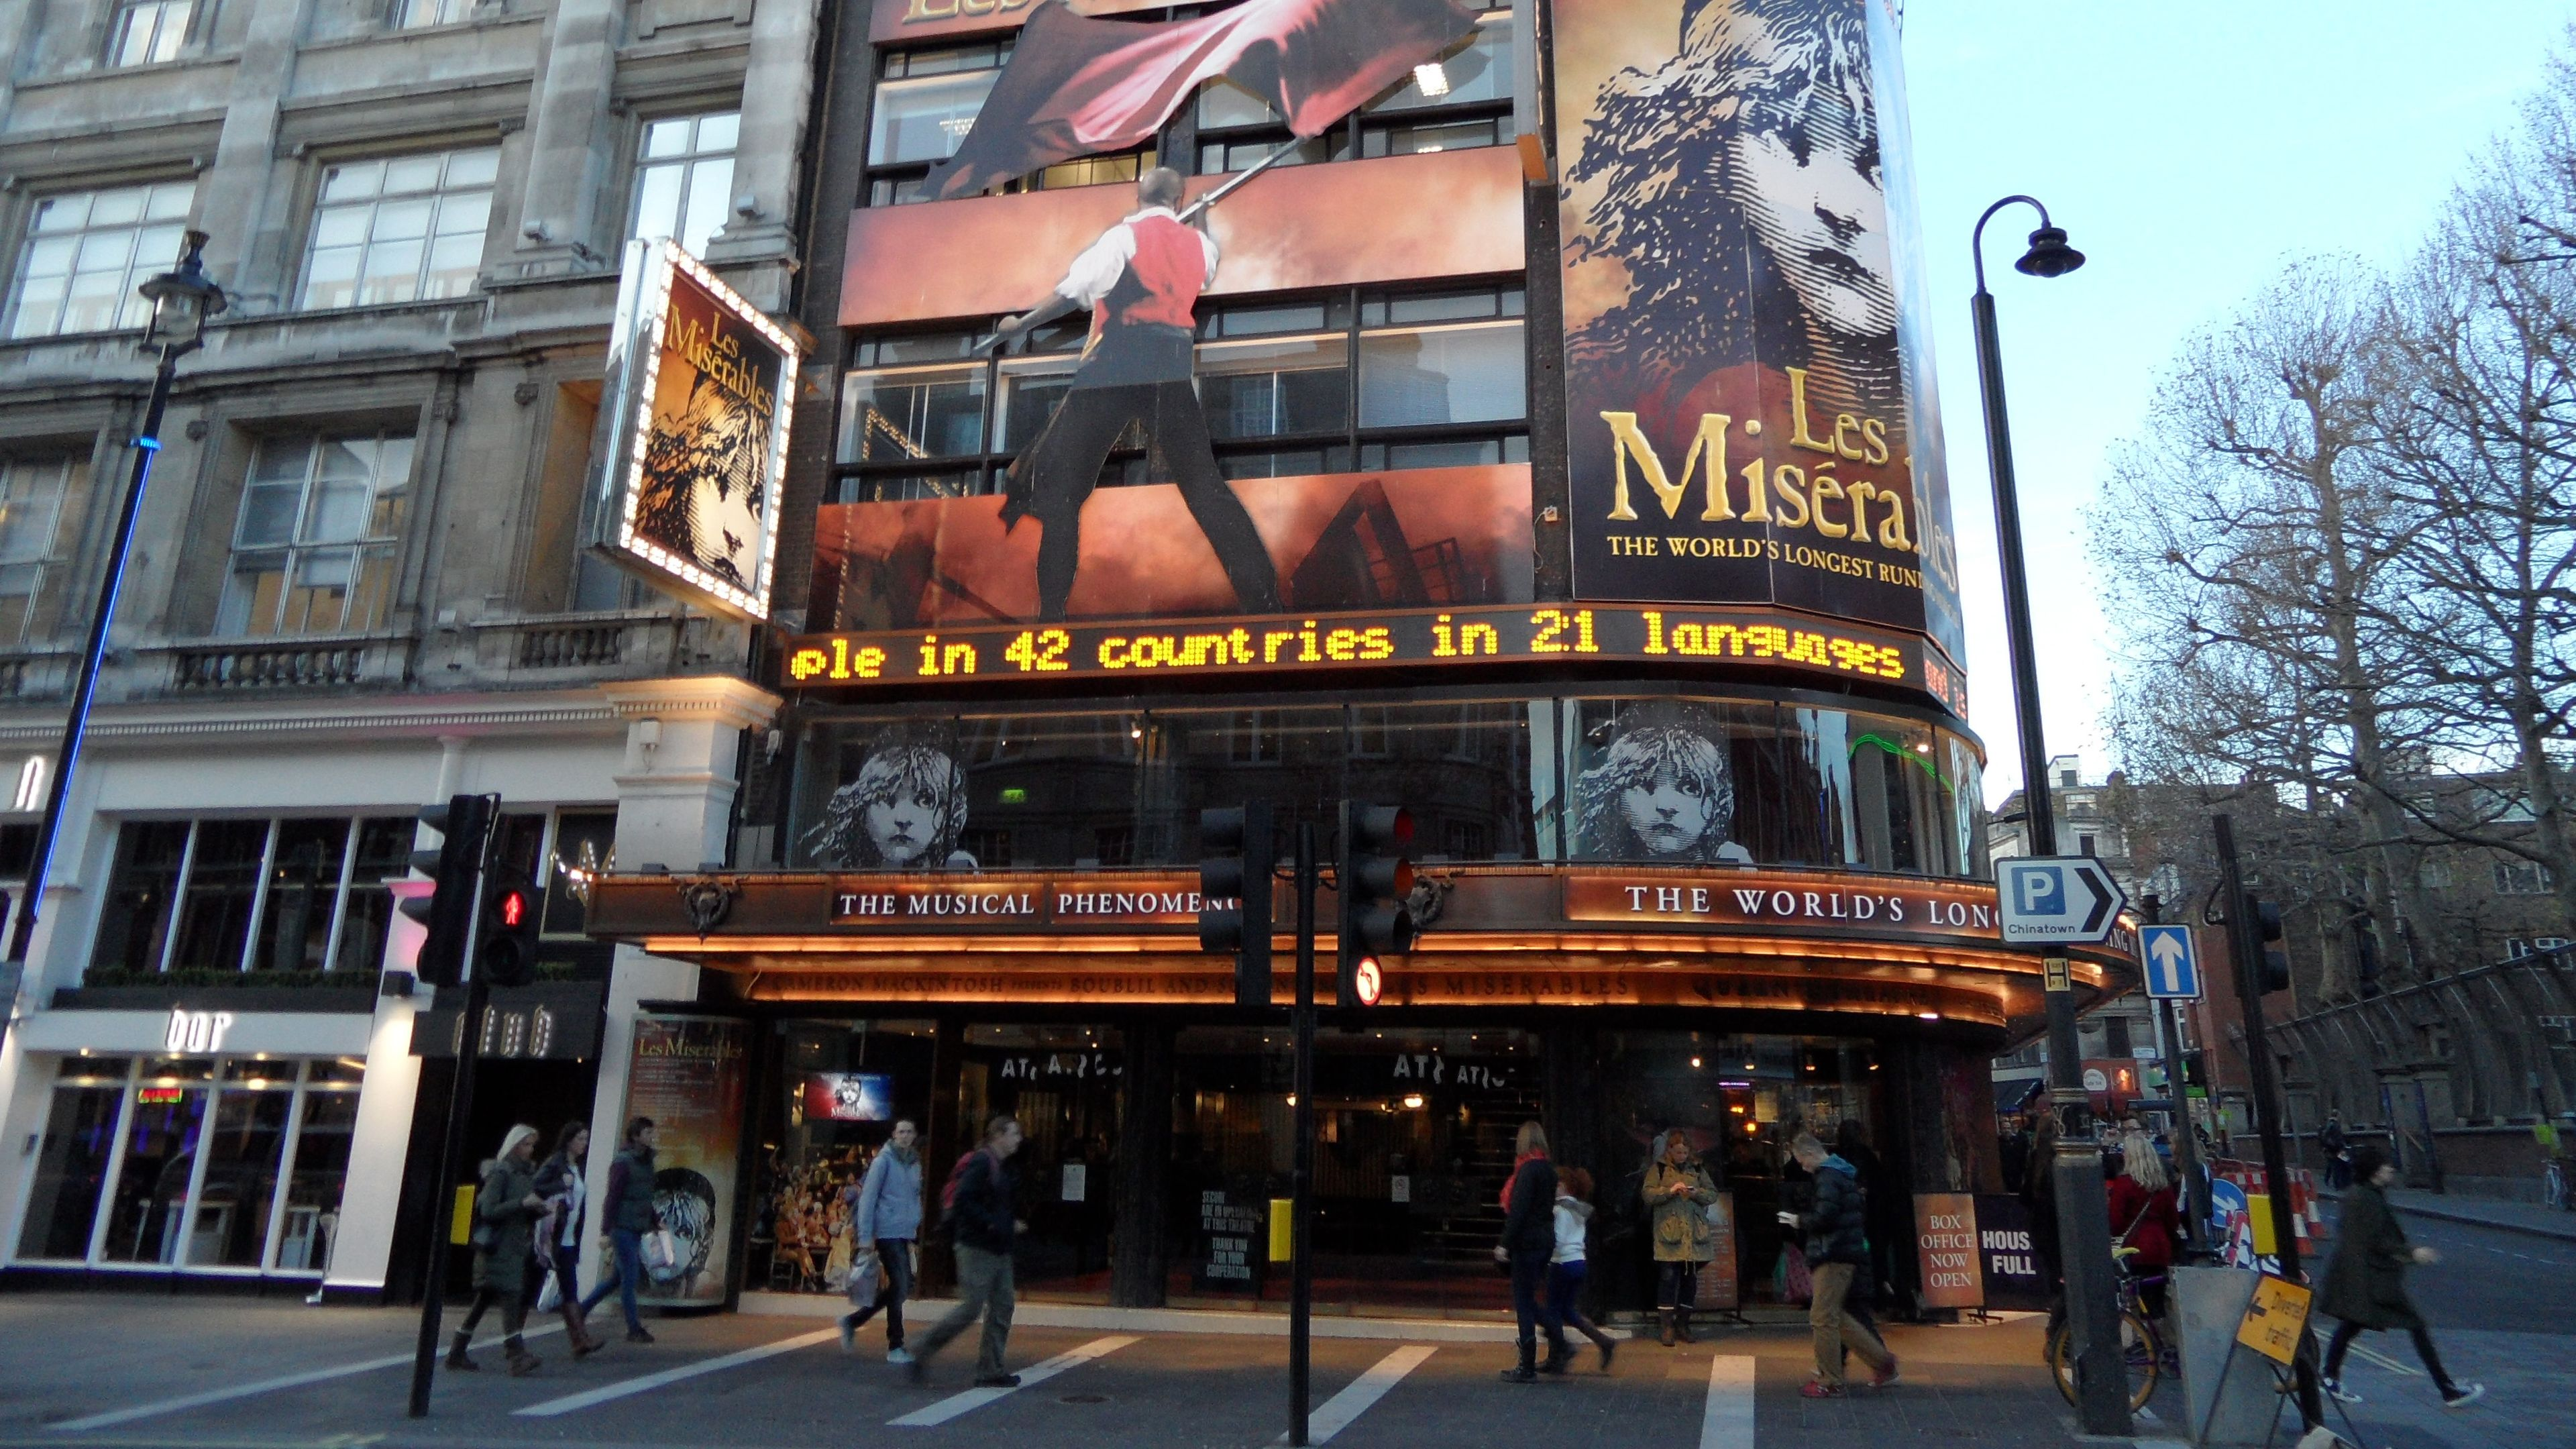 An english theater playing Les Miserables